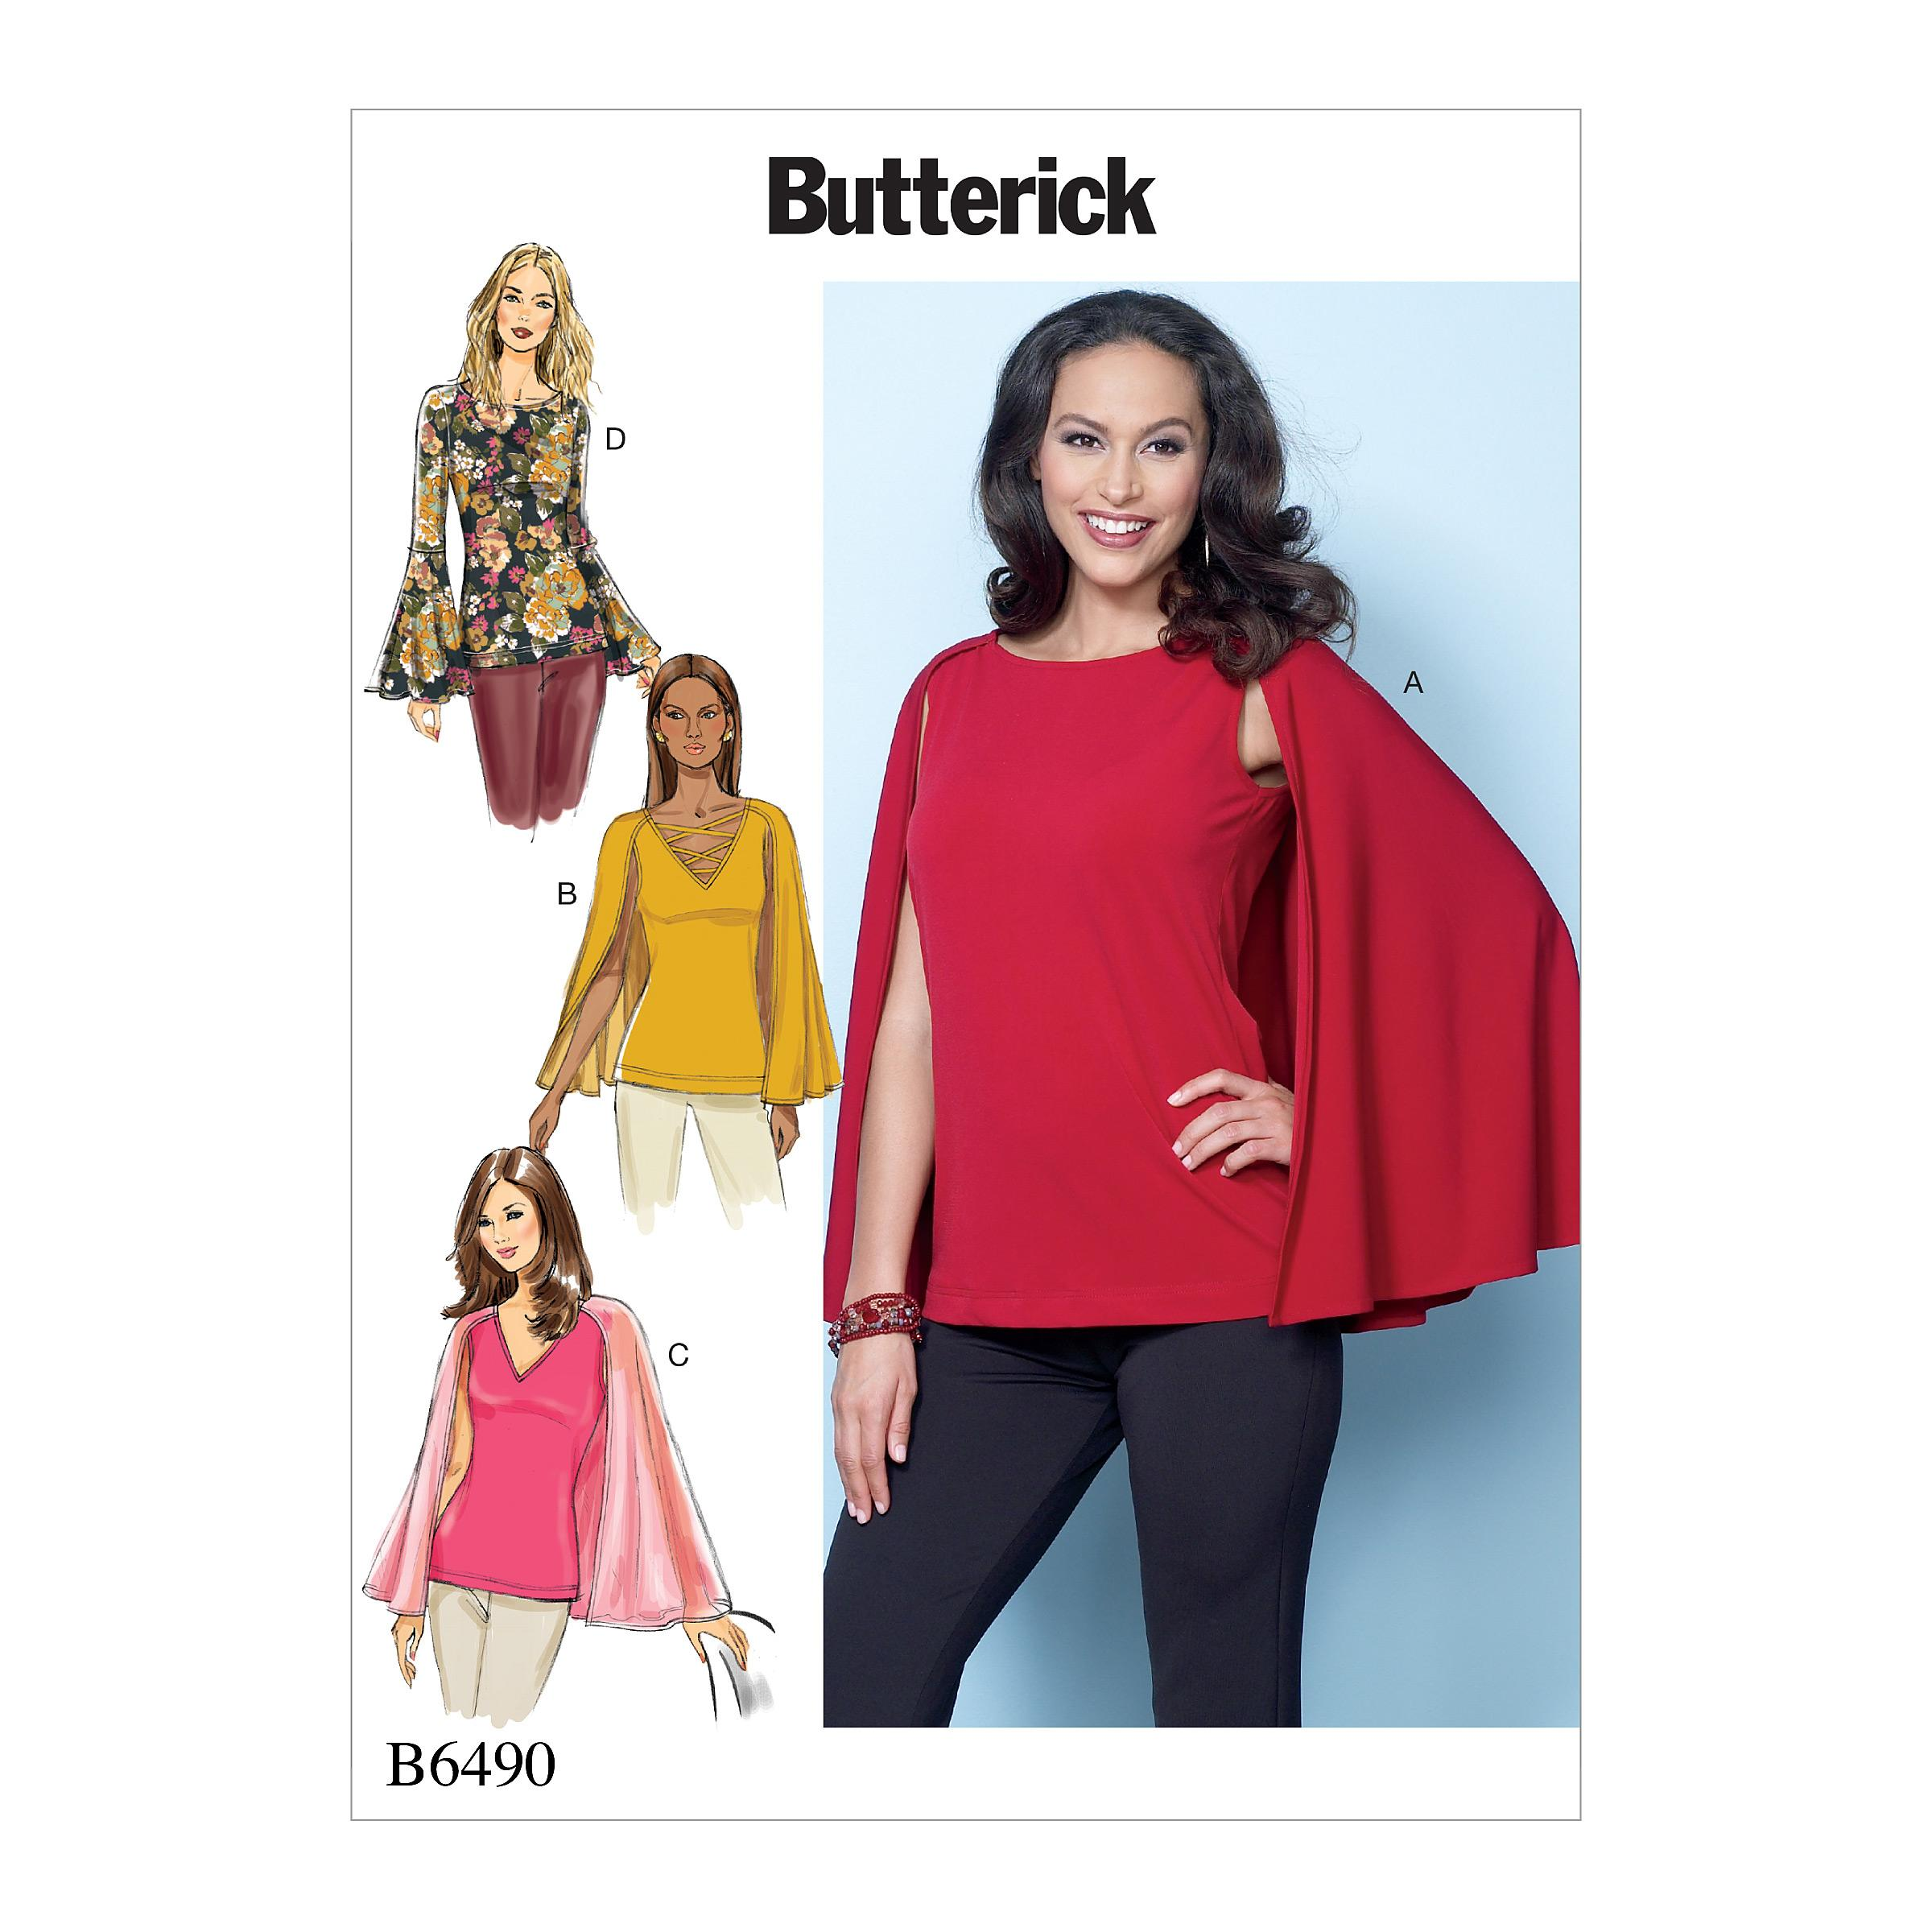 Butterick B6490 Misses' Tops with Attached Cape and Sleeve Variations